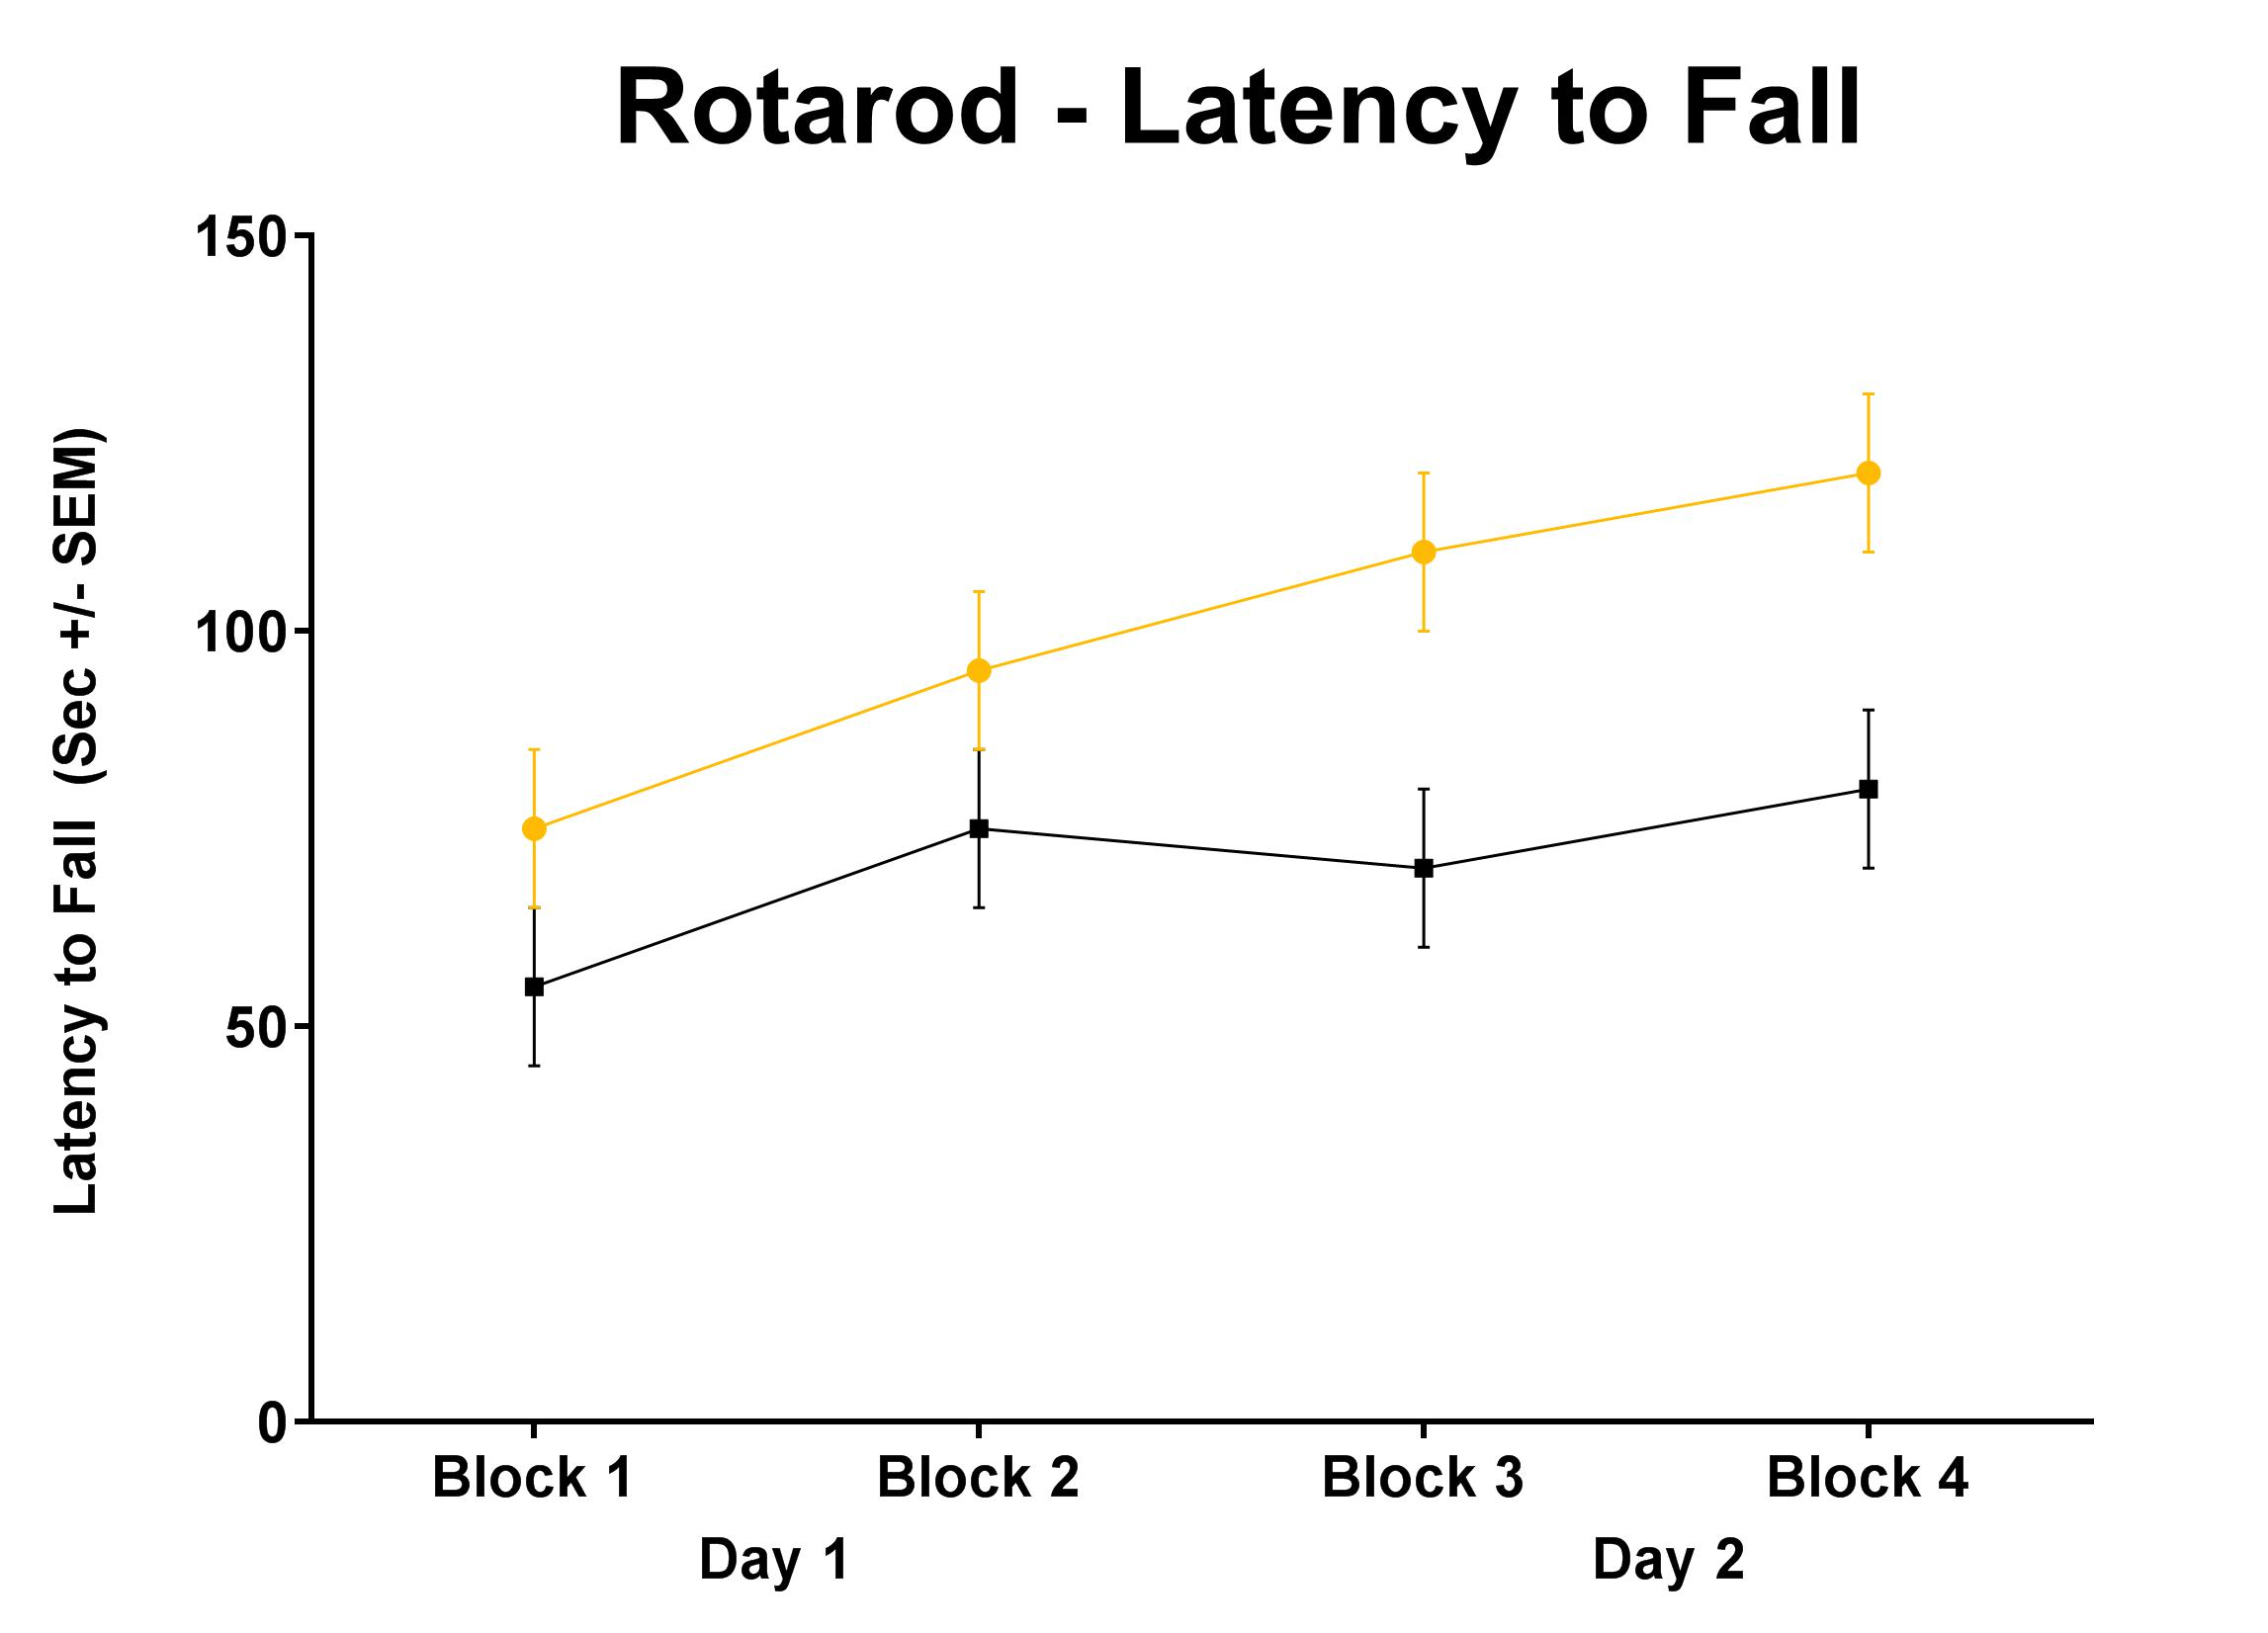 Treatments that disrupt motor ability and coordination will cause impaired performance on the RotaRod. This test has been validated by examining ethanol induced ataxia. Mice were tested in four trials a day over the course of two days. The graph above shows the results of the trials collapsed into two trial blocks. Mice that received ethanol fell from the RotaRod significantly faster than saline treated animals at all time points. These data demonstrate the sensitivity of the task in distinguishing motor im